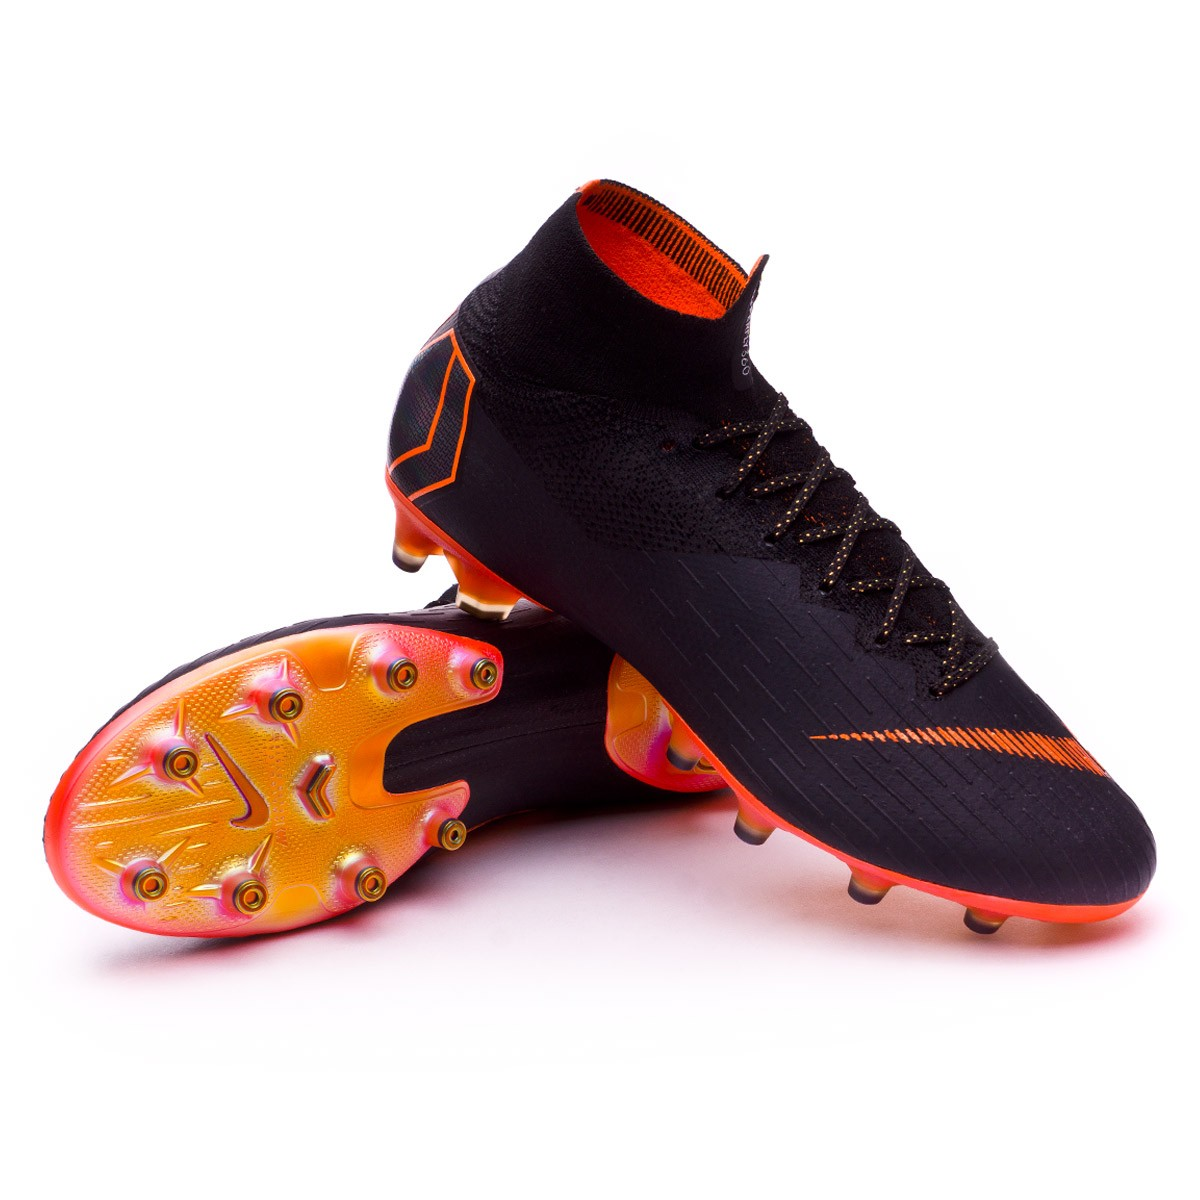 best service 2eb51 7732c Nike Mercurial Superfly VI Elite AG-Pro Football Boots. Black-Total orange-White  ...